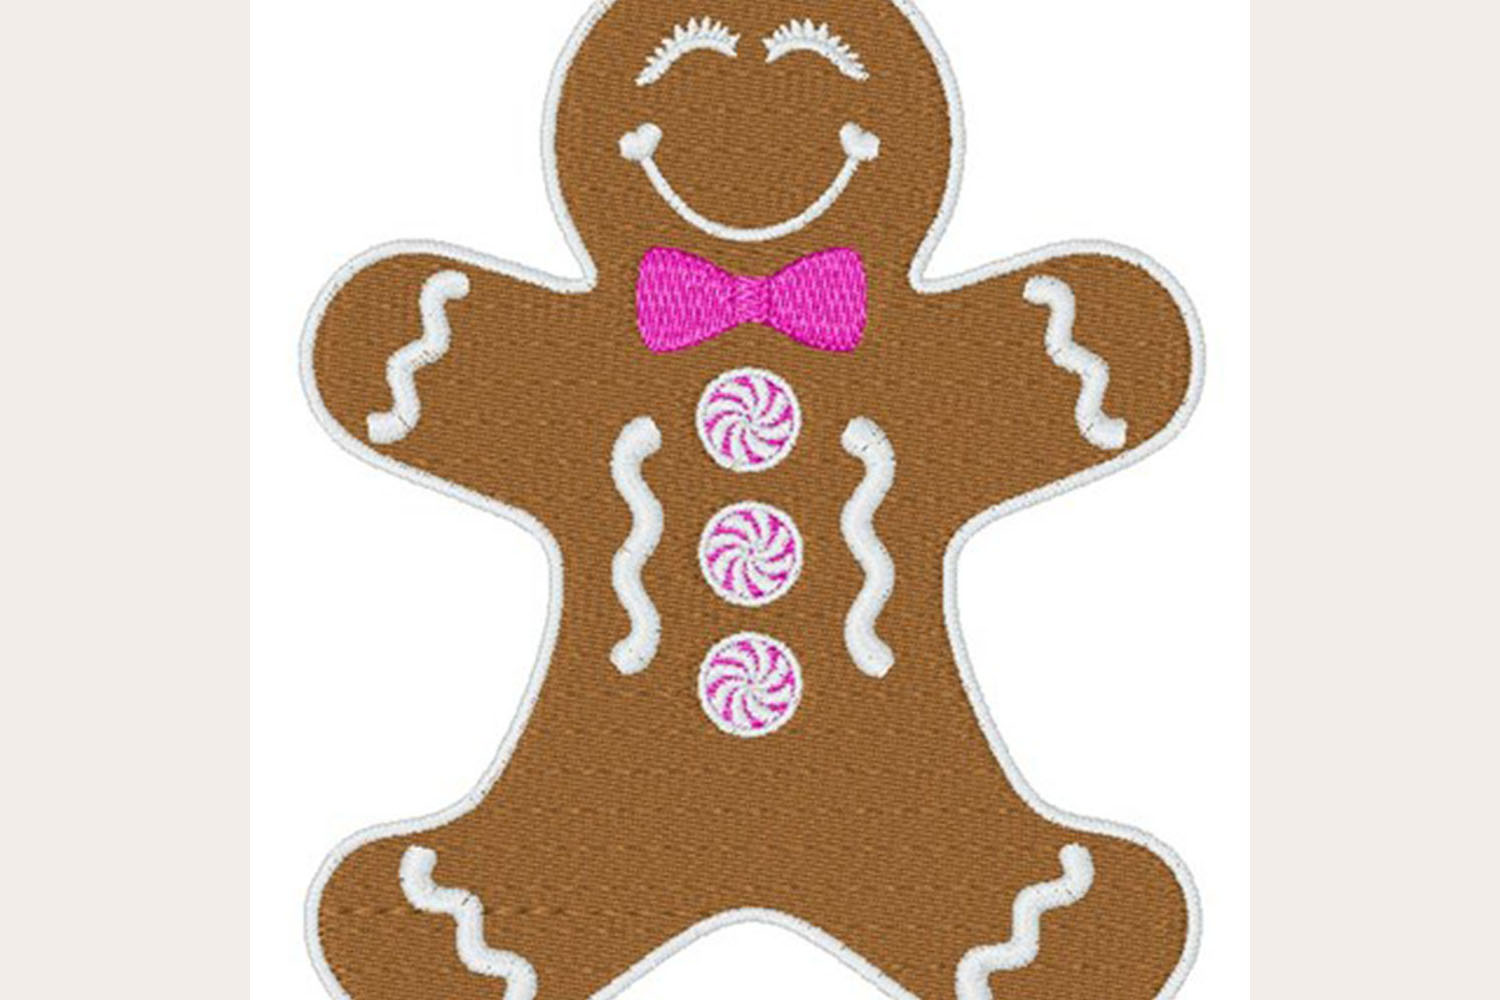 Gingerbread Man - Machine Embroidery Design example image 1